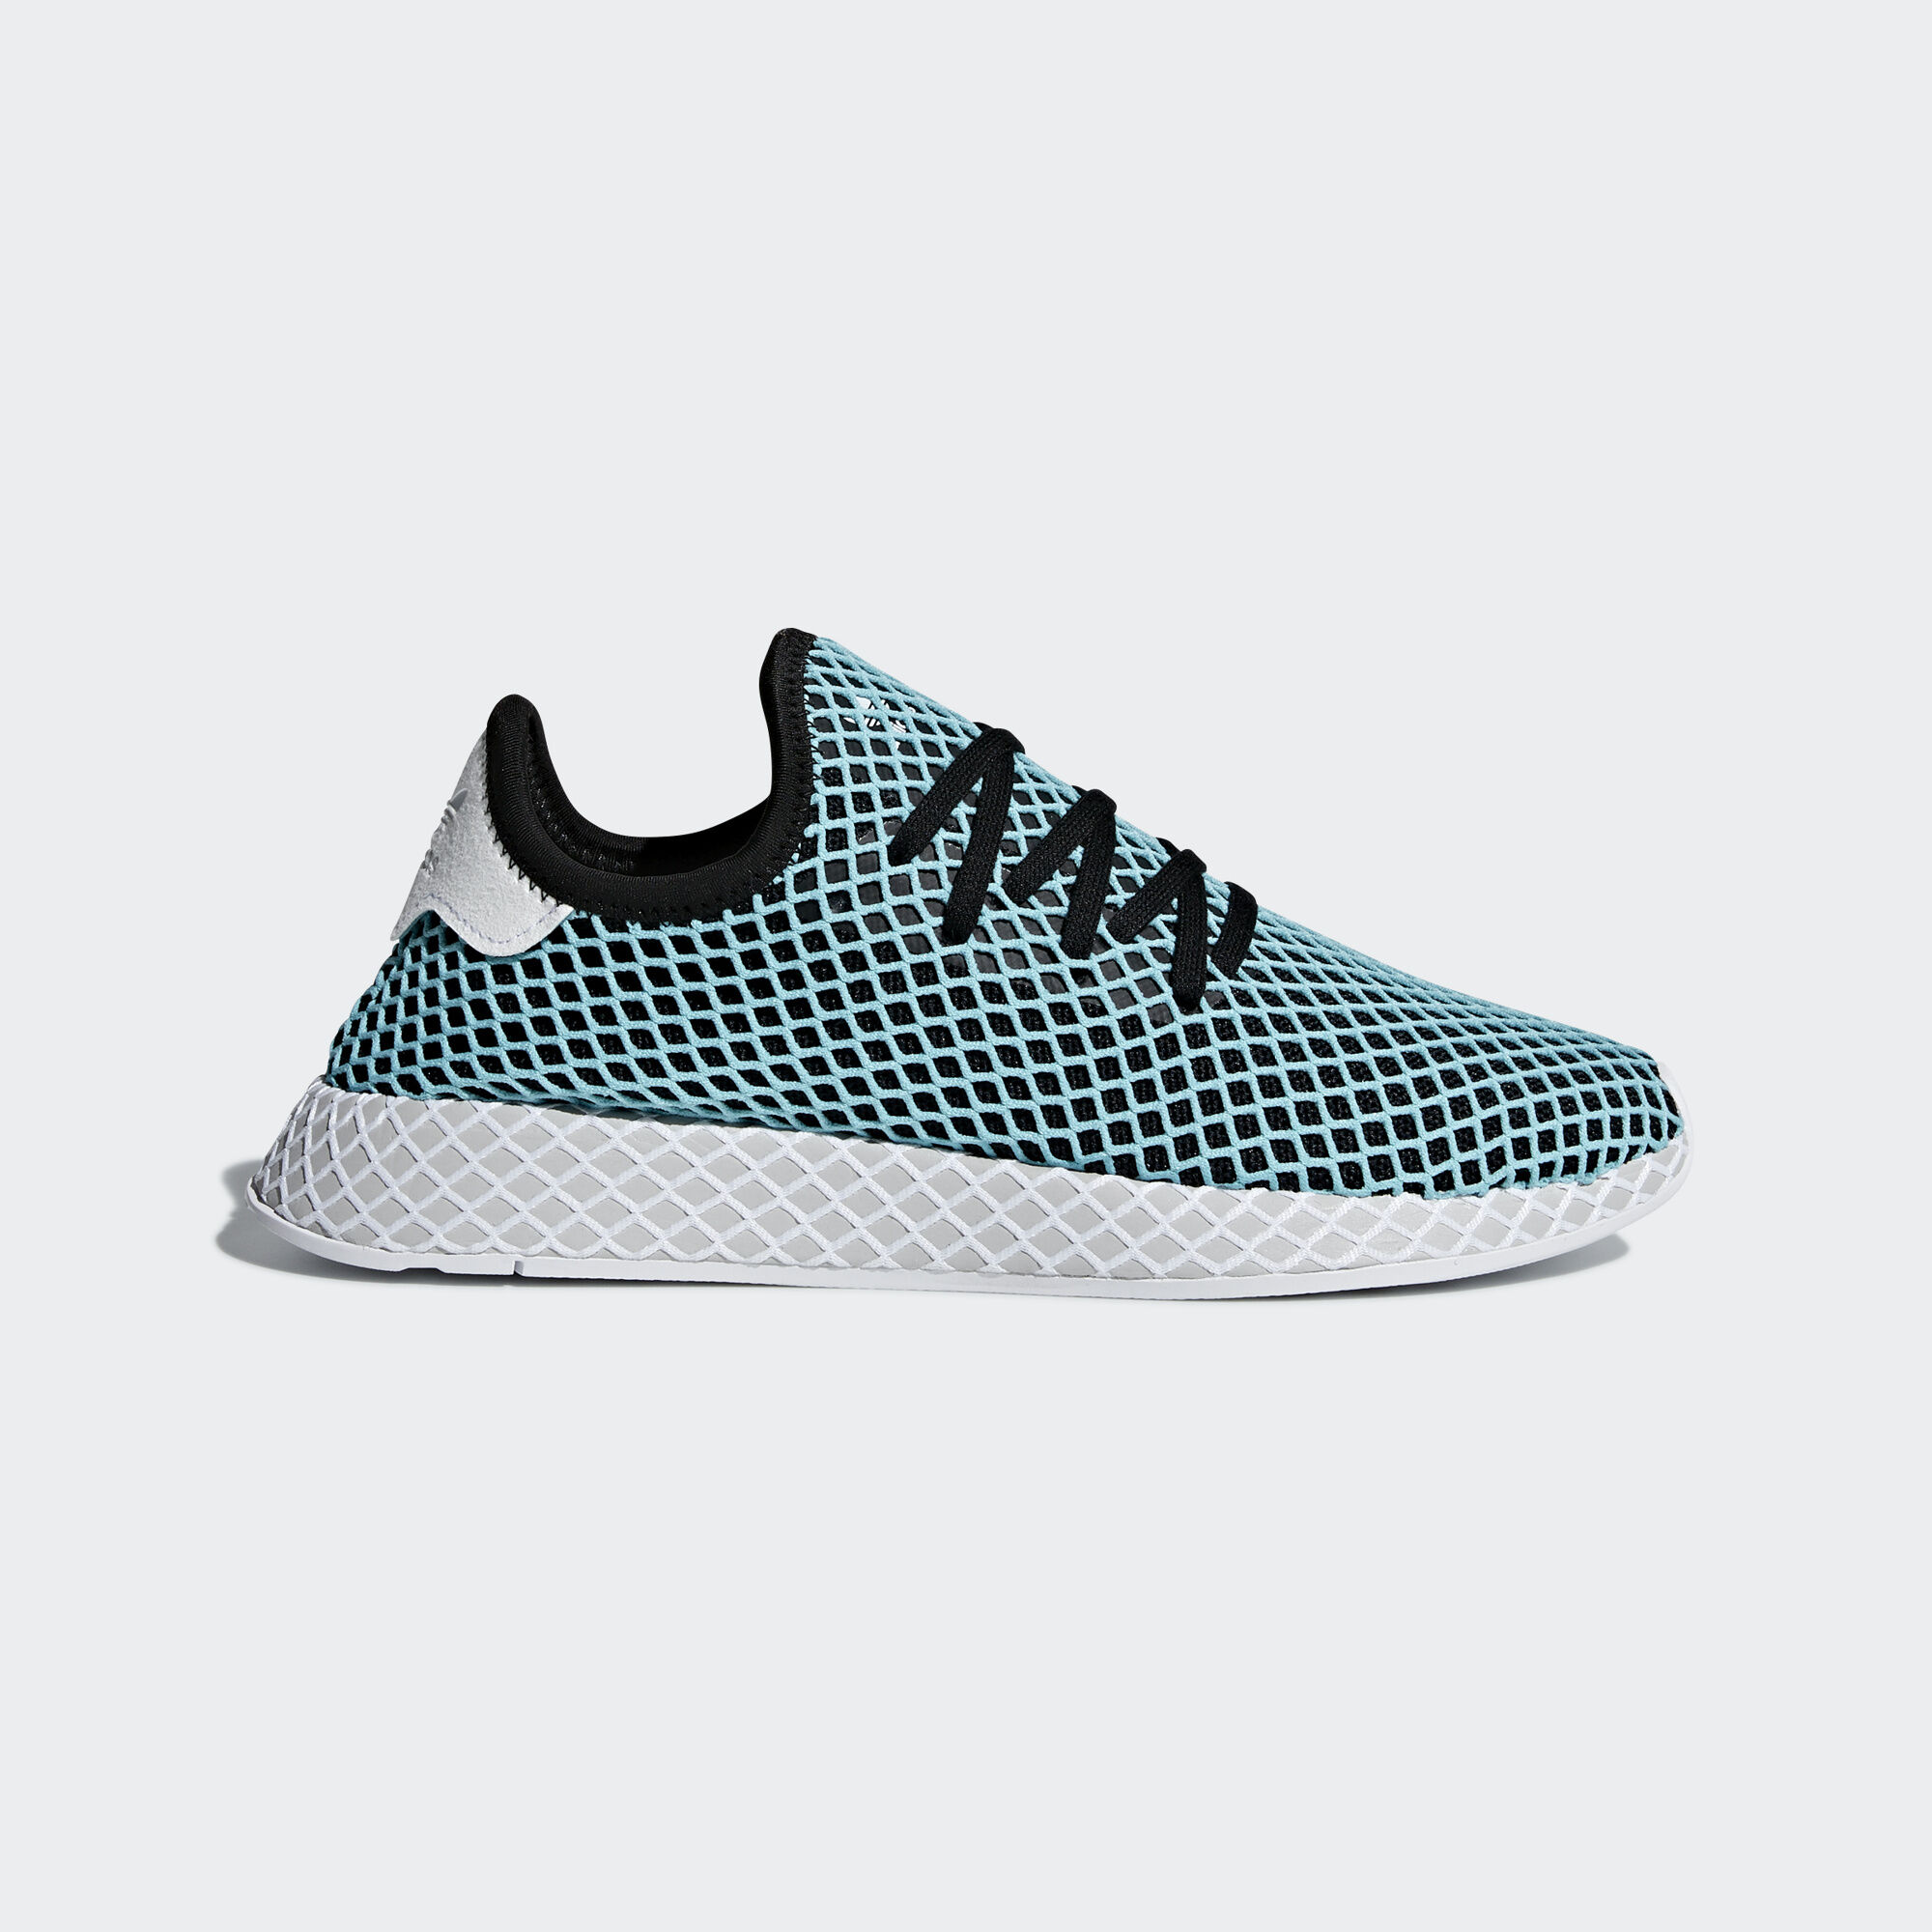 Chaussures Parley Coureur Deerupt 1ey0bGwg